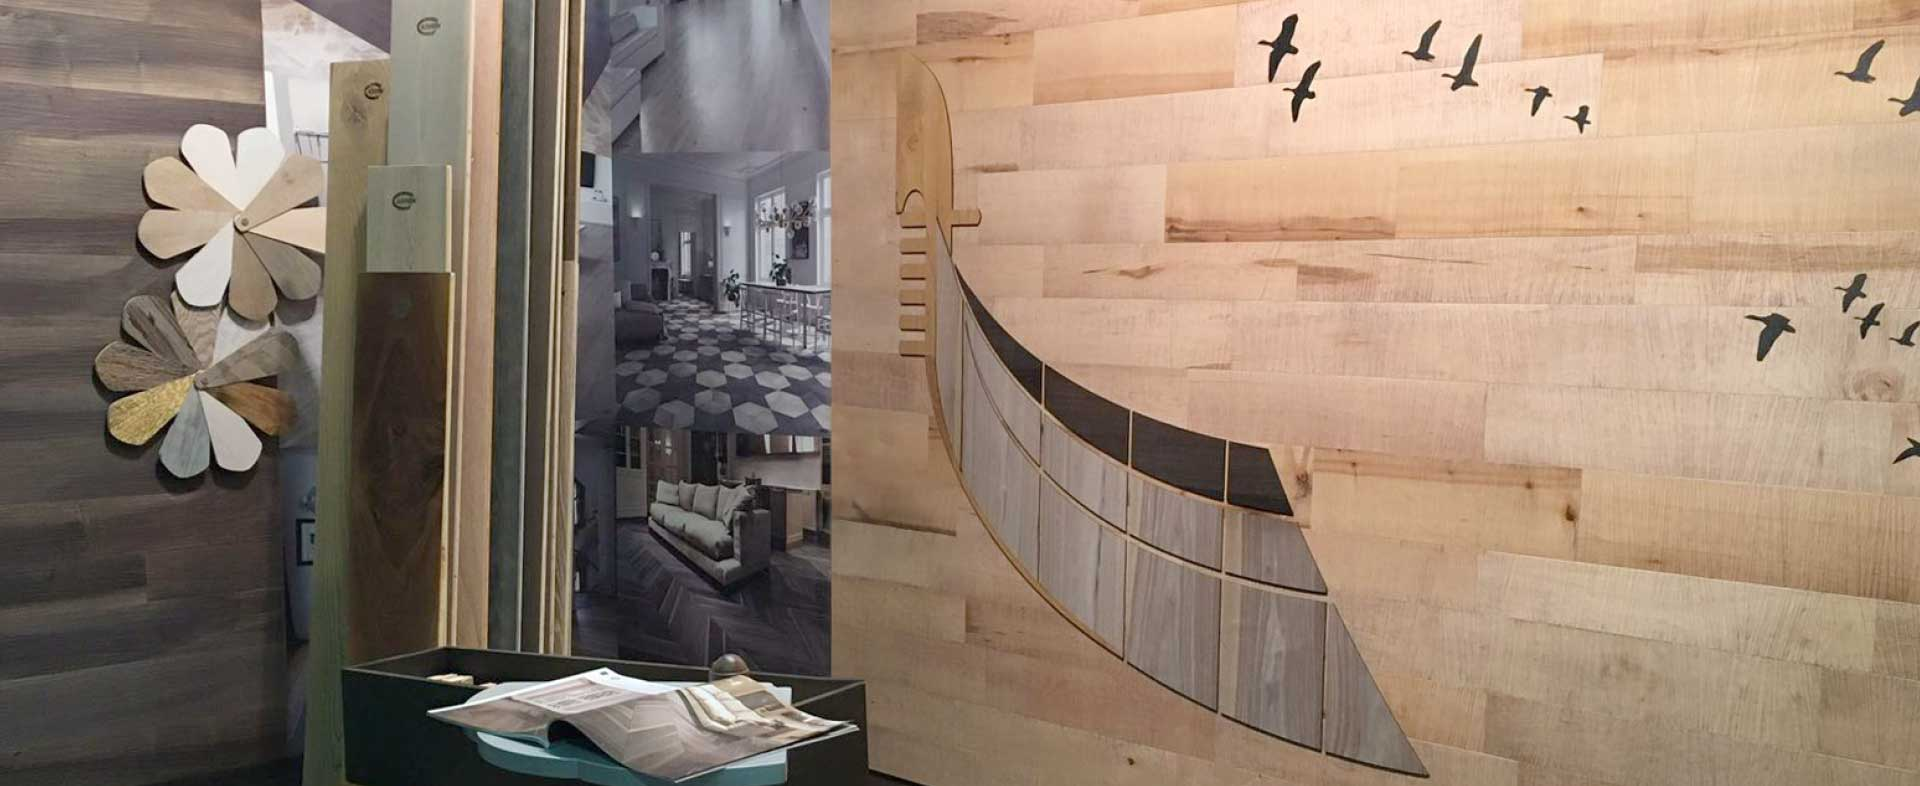 Cadorin at AD Design Show Architectural Digest Design Show New York City